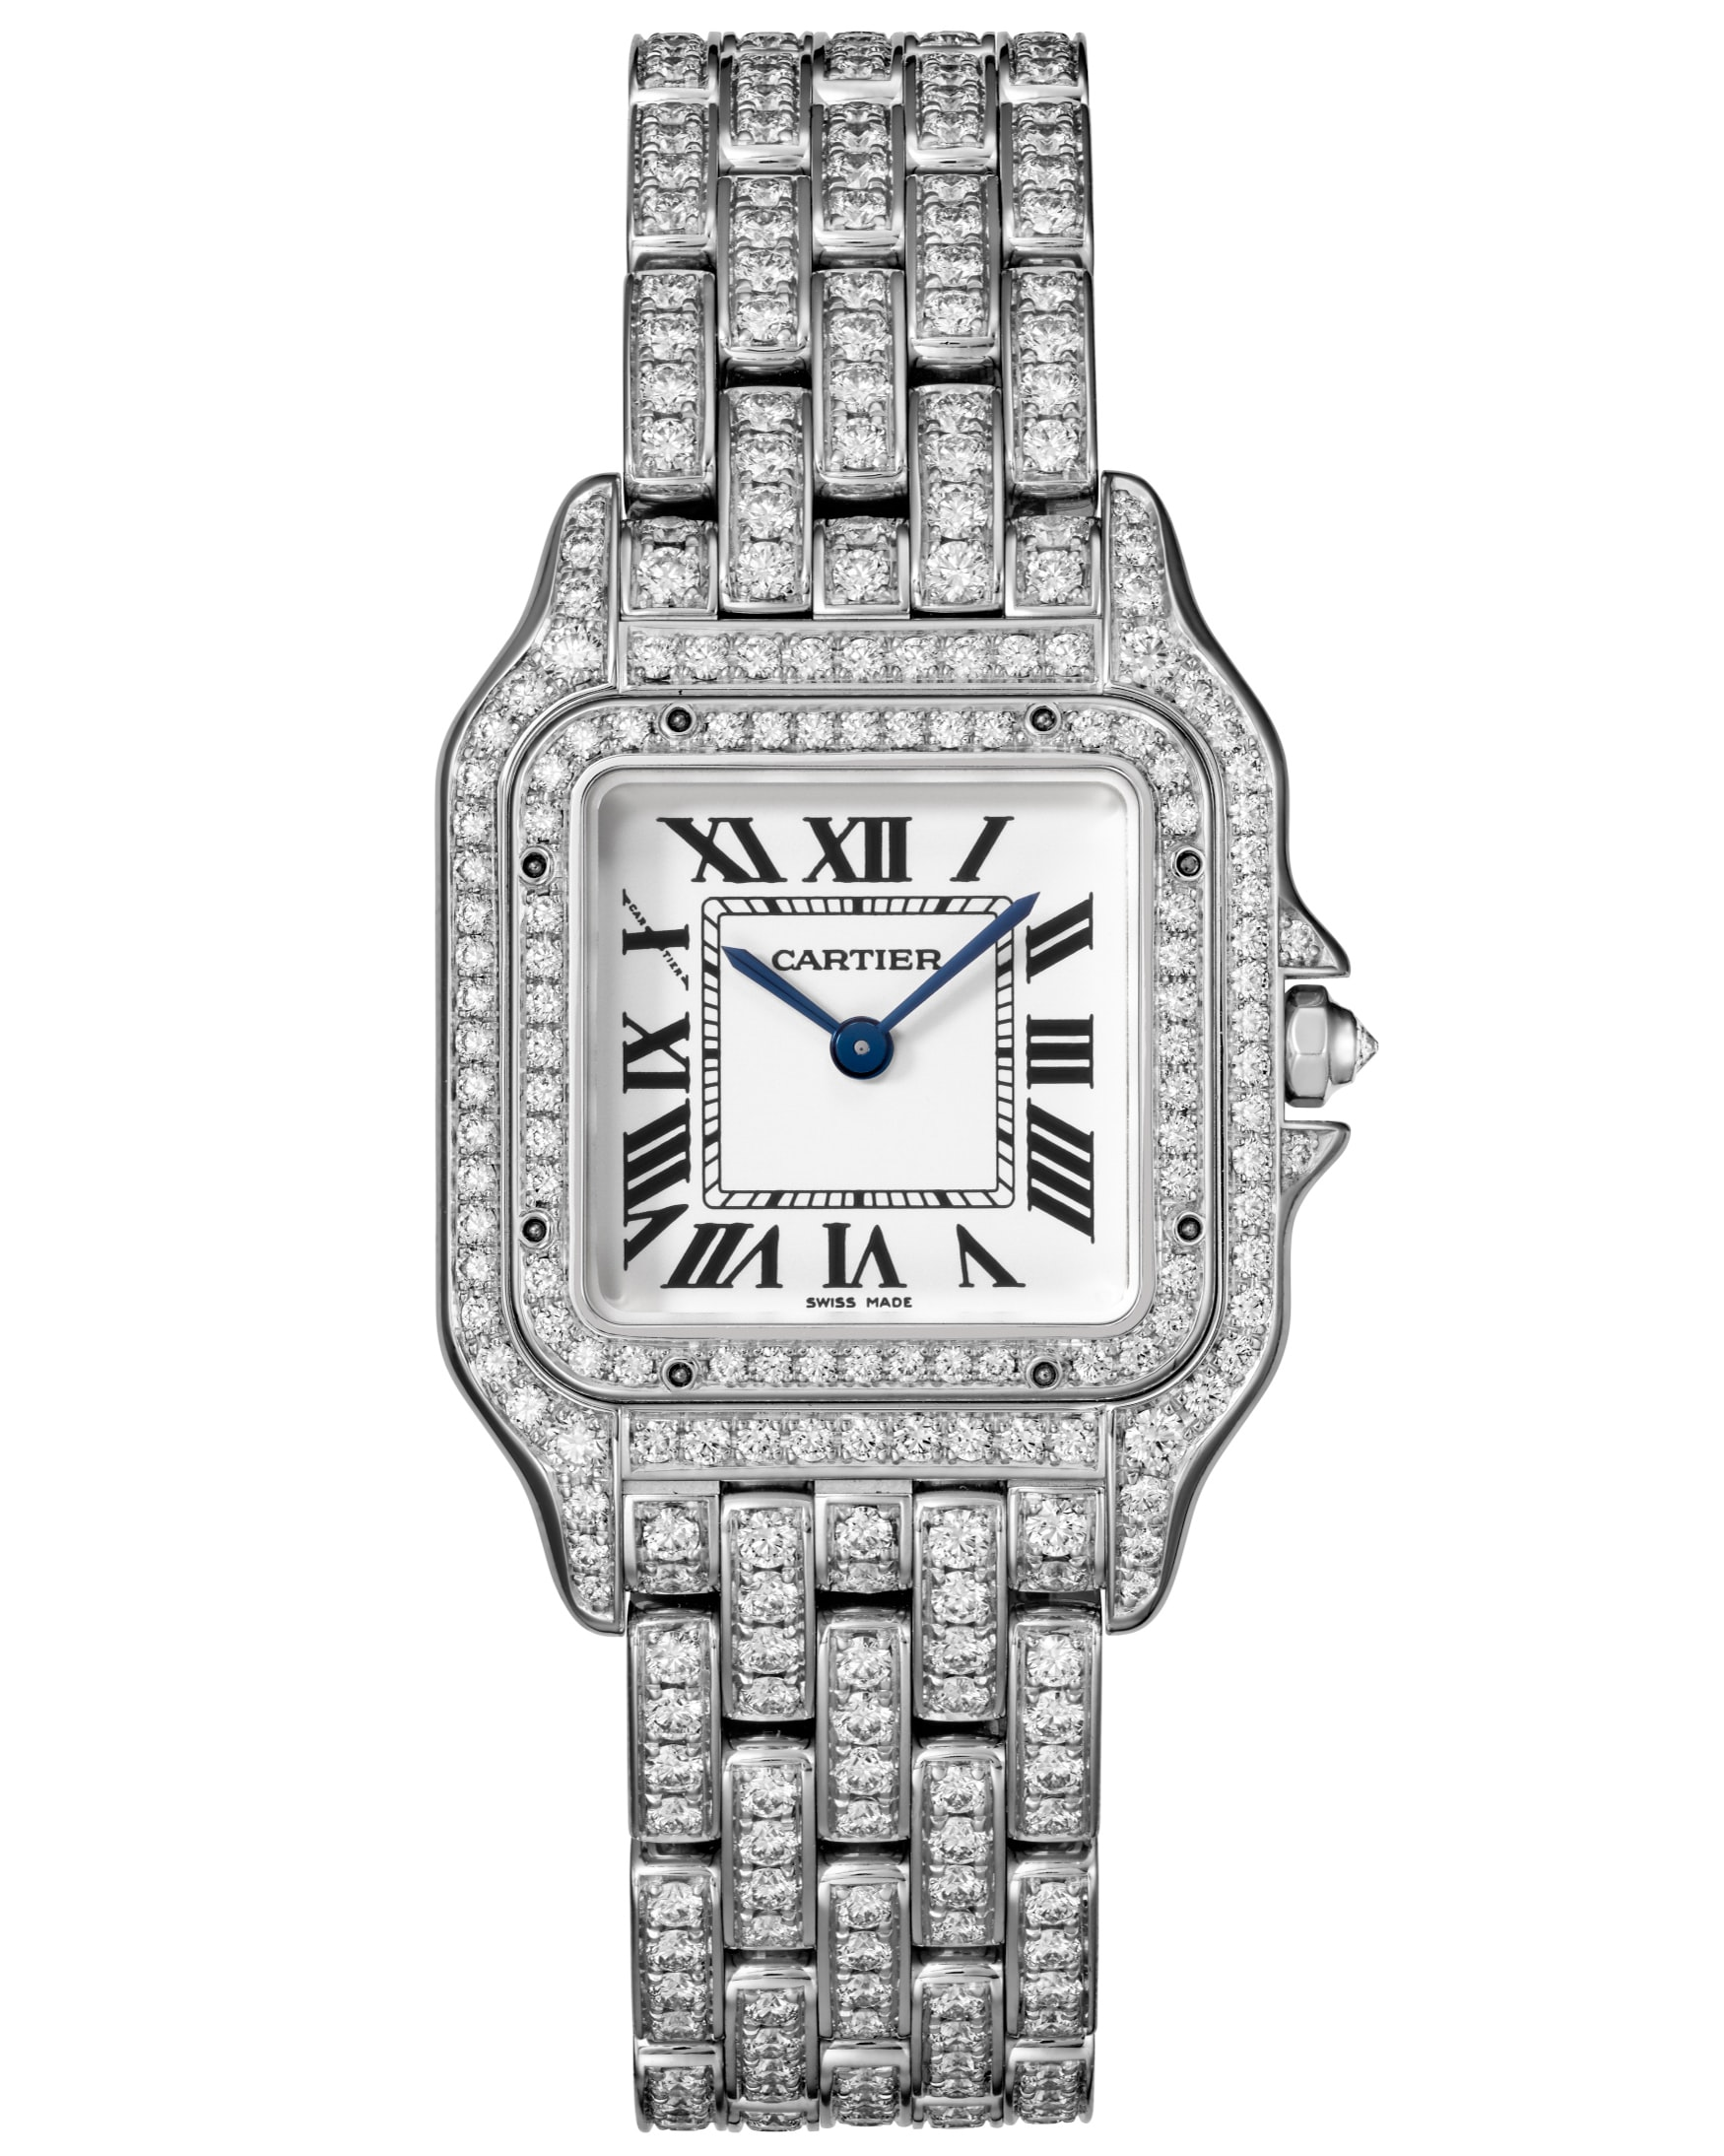 Small model, white gold and diamonds. Introducing: The Cartier Panthère De Cartier Collection, Re-Introduced For 2017 Introducing: The Cartier Panthère De Cartier Collection, Re-Introduced For 2017 10B PANTHERE DE CARTIER HPI01130